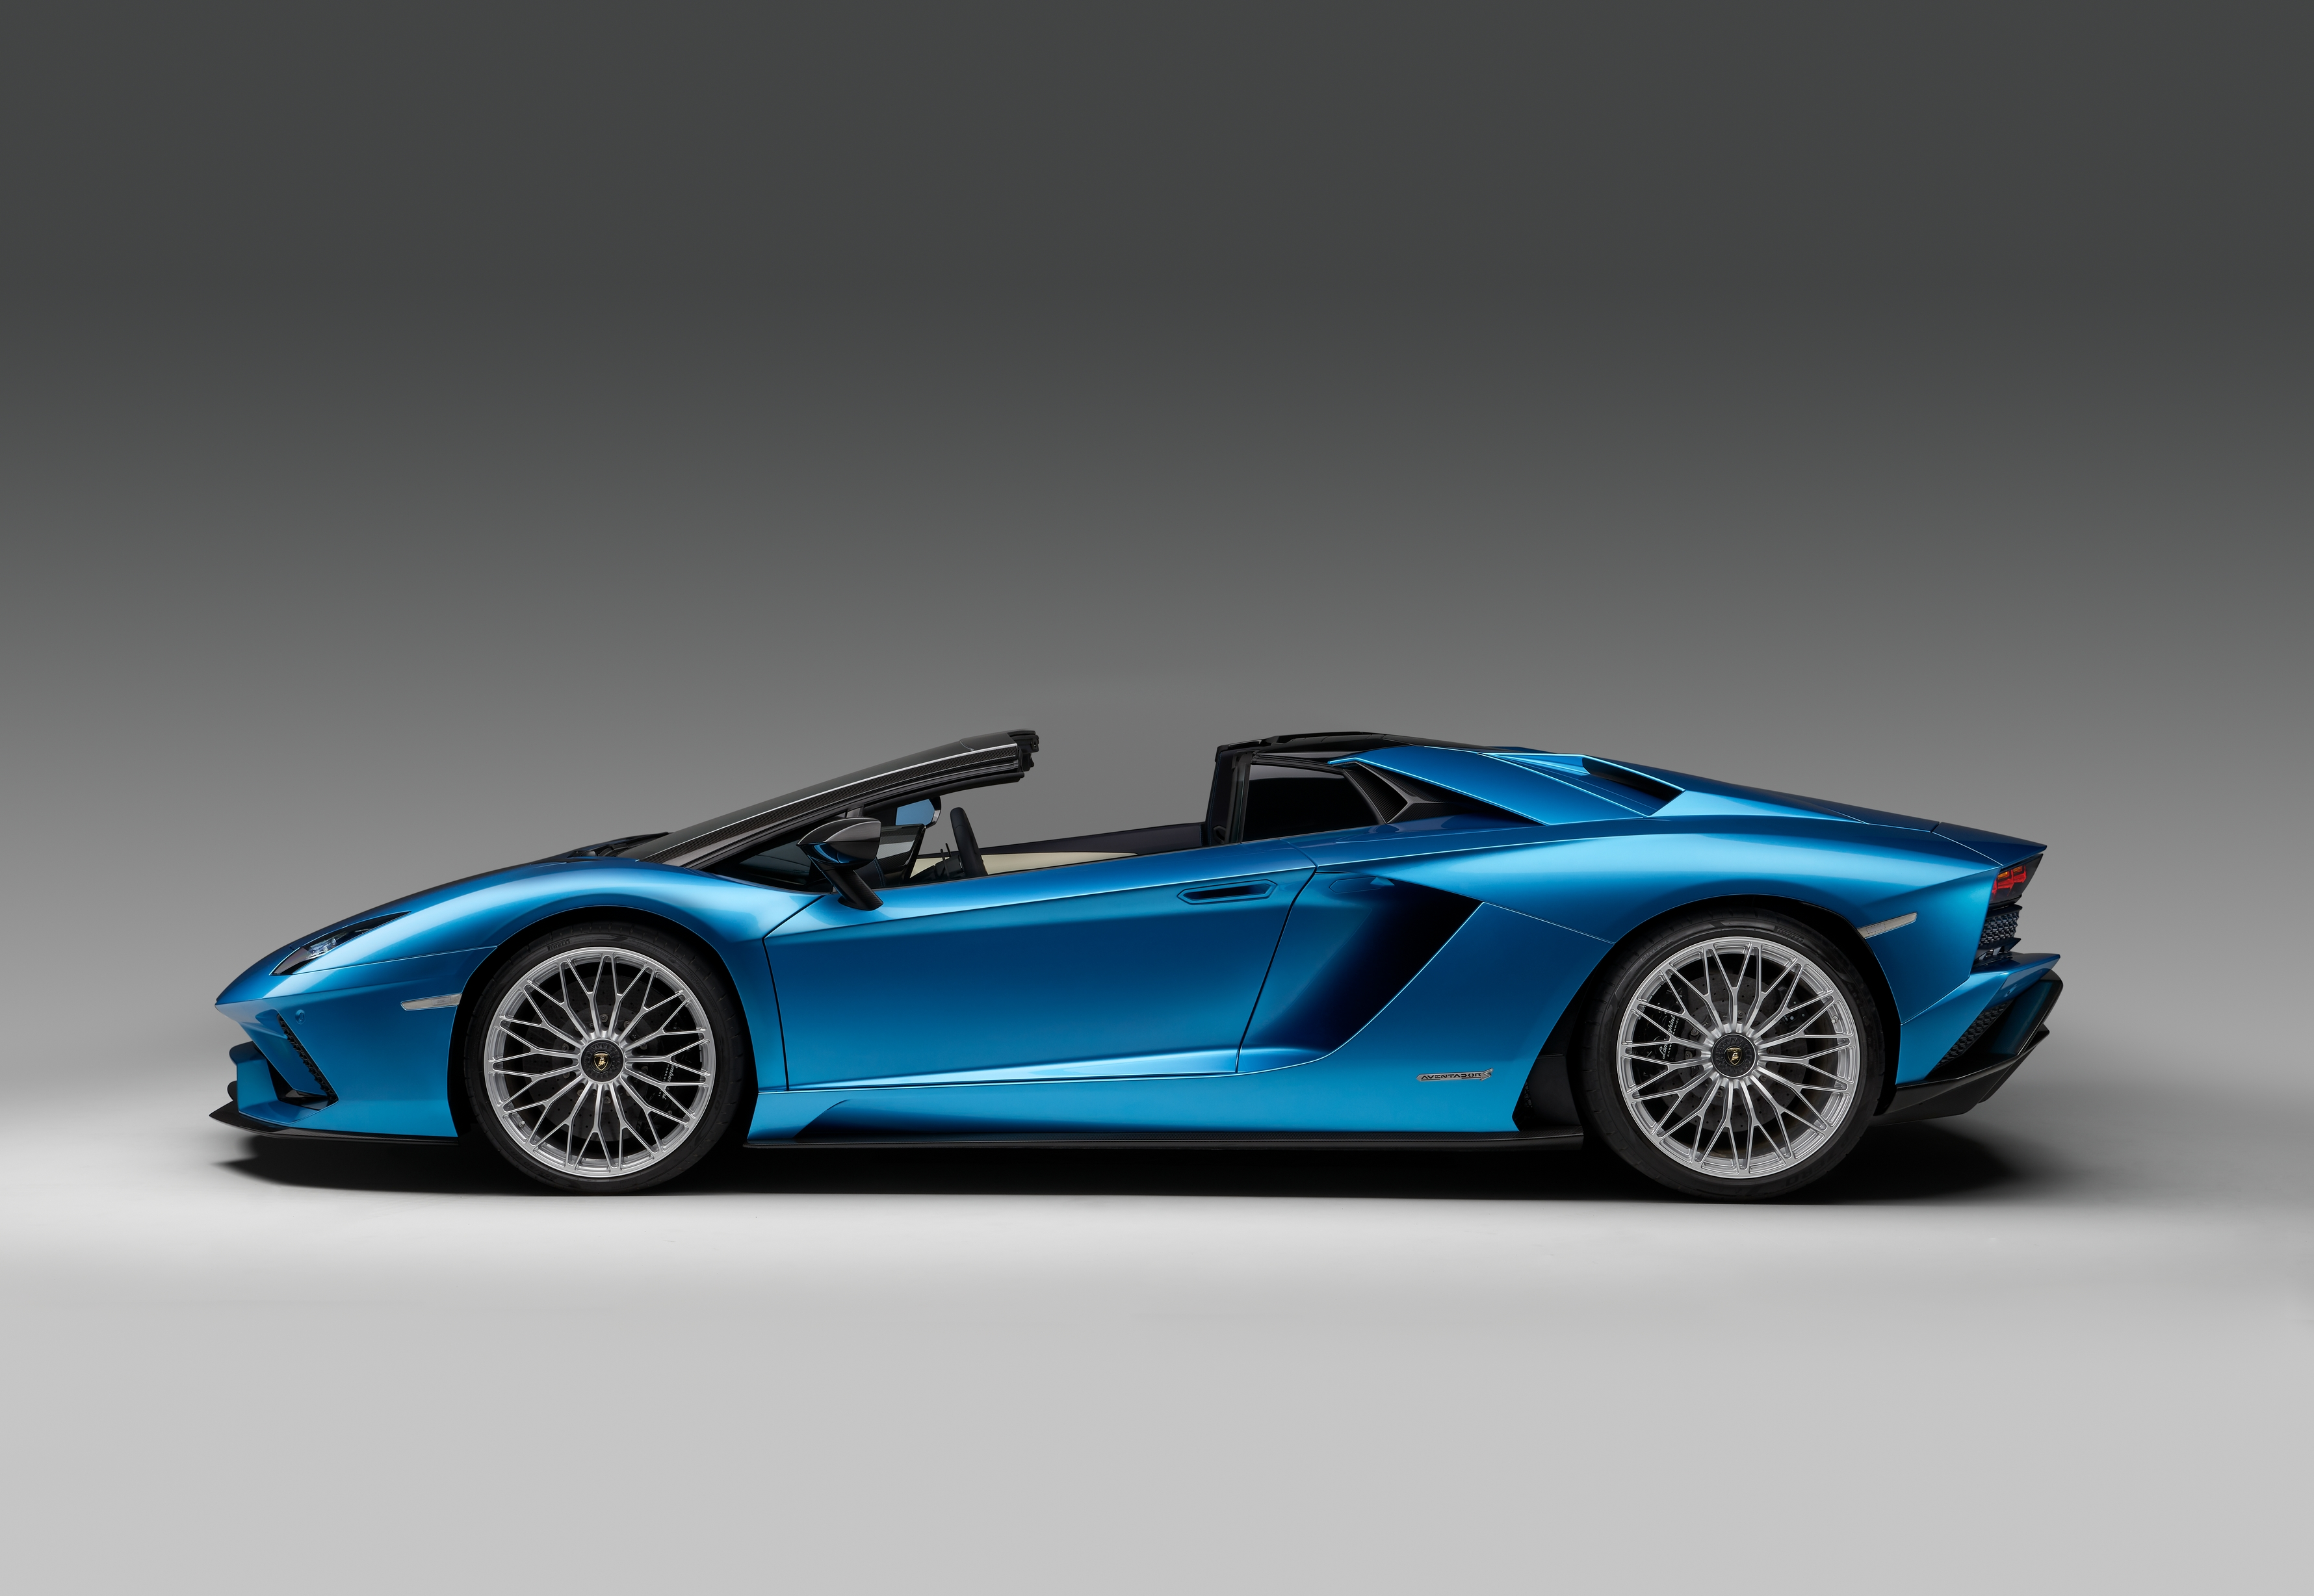 NEW: Lamborghini Aventador S Roadster on lotus elise roof, ktm x-bow roof, fiat 500x roof, bugatti veyron roof, porsche boxster roof, nissan leaf roof, jaguar xj roof, maybach roof, bmw m3 roof, caterham 7 roof, jeep wrangler roof, volkswagen golf roof, dodge ram roof, honda accord roof, ferrari 458 spider roof, ford mustang roof, porsche 918 roof, ariel atom roof, jeep grand cherokee roof, porsche panamera roof,